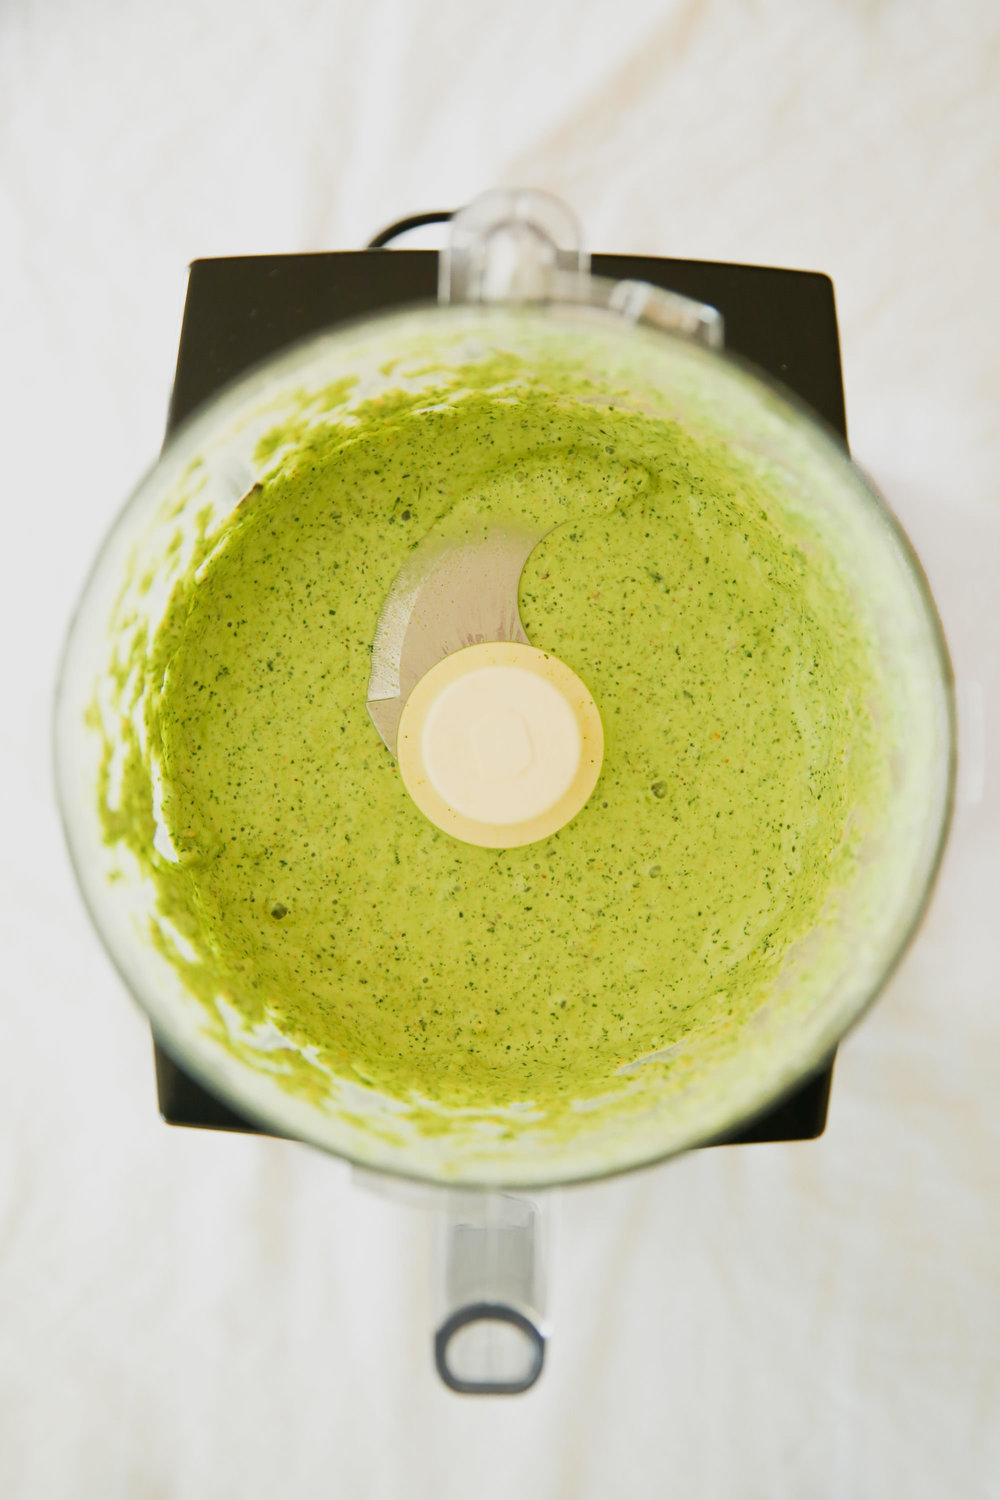 Blended Green Goddess Dressing